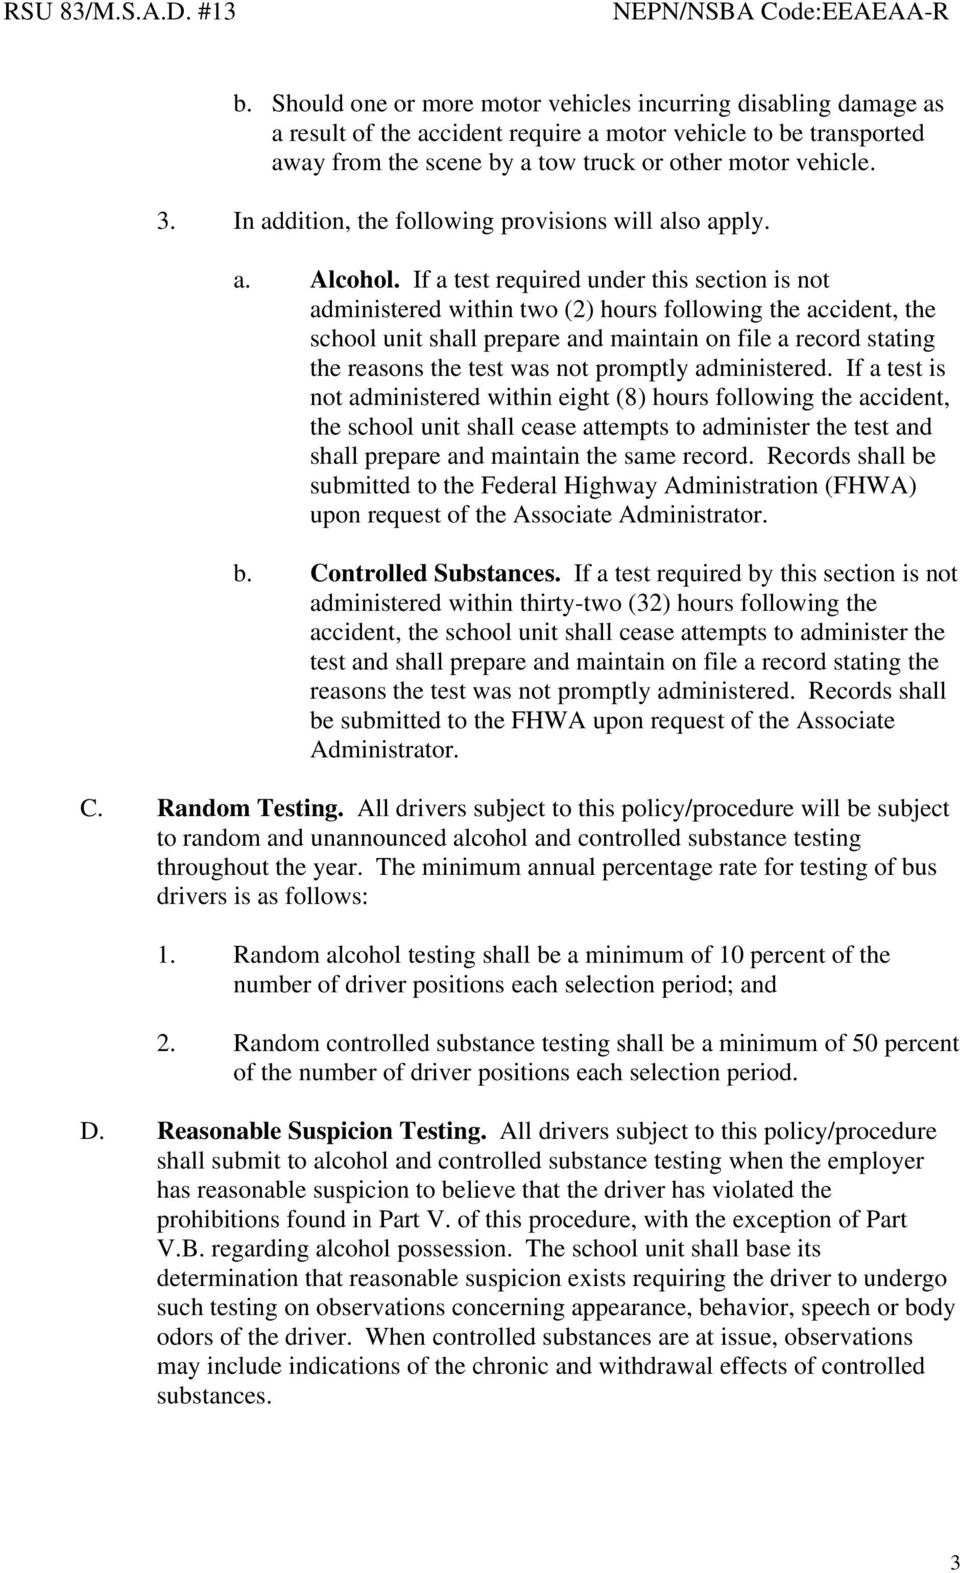 If a test required under this section is not administered within two (2) hours following the accident, the school unit shall prepare and maintain on file a record stating the reasons the test was not